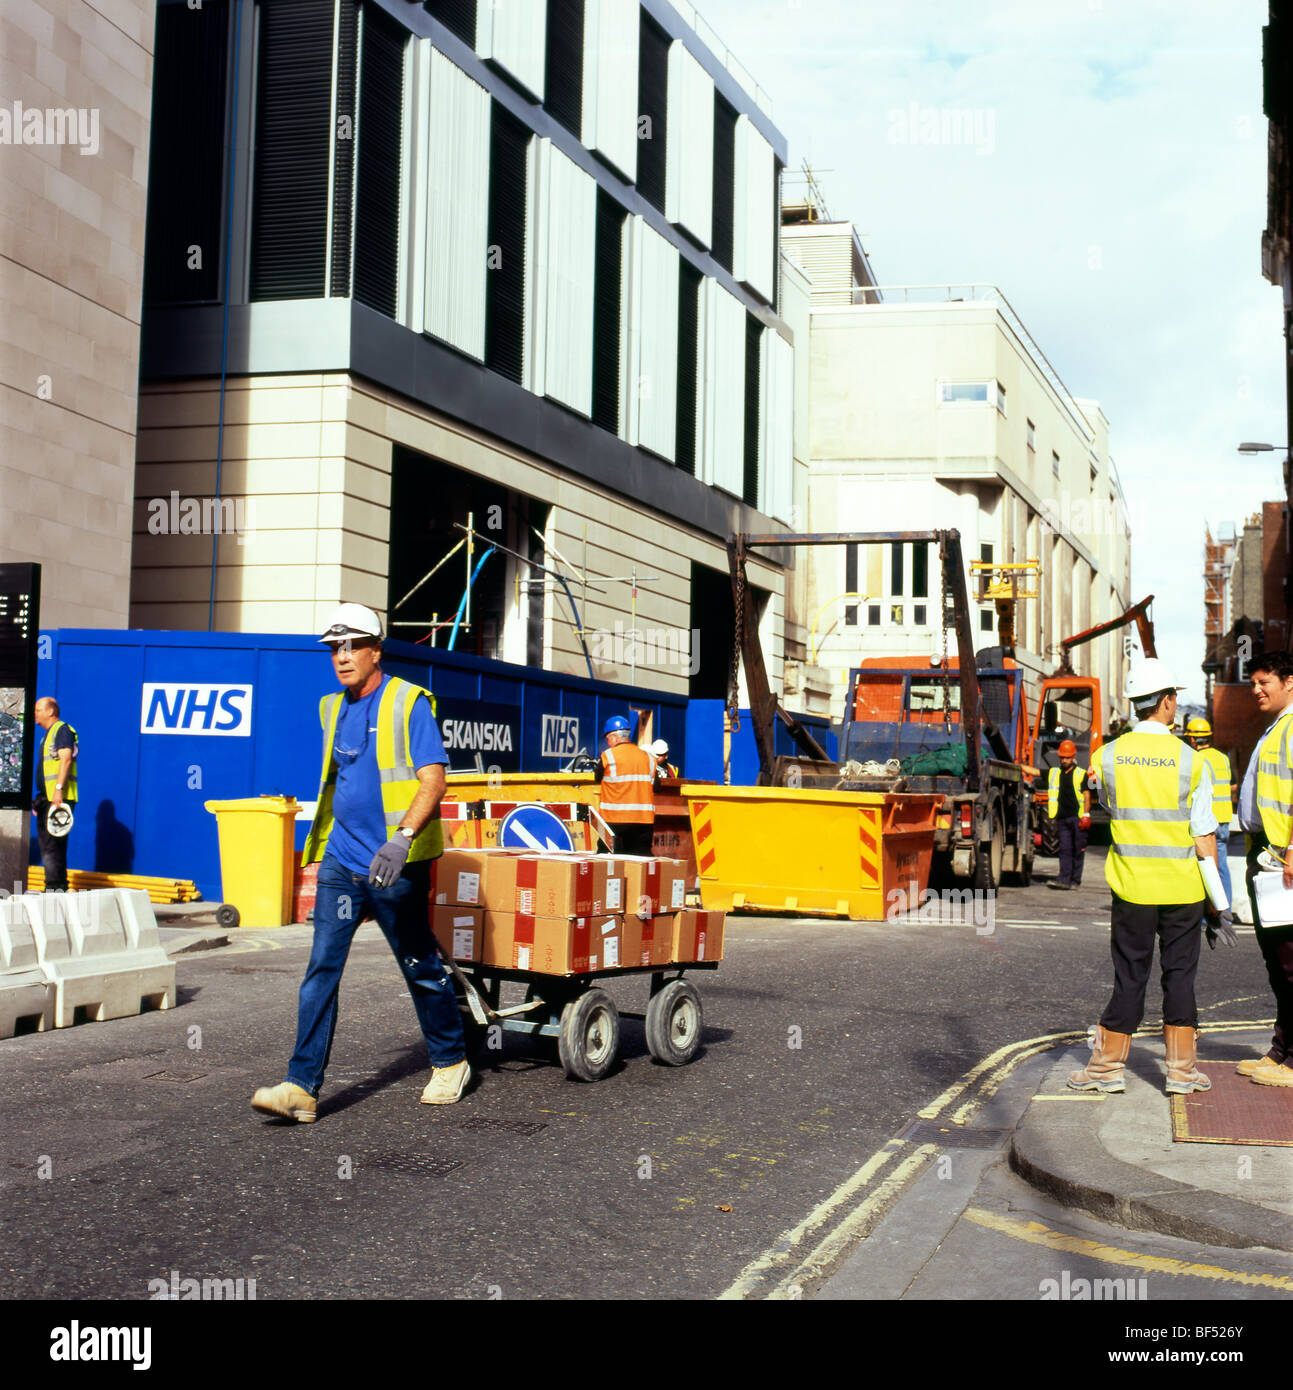 Workers on the NHS St. Barts new hospital construction site London England UK KATHY DEWITT - Stock Image